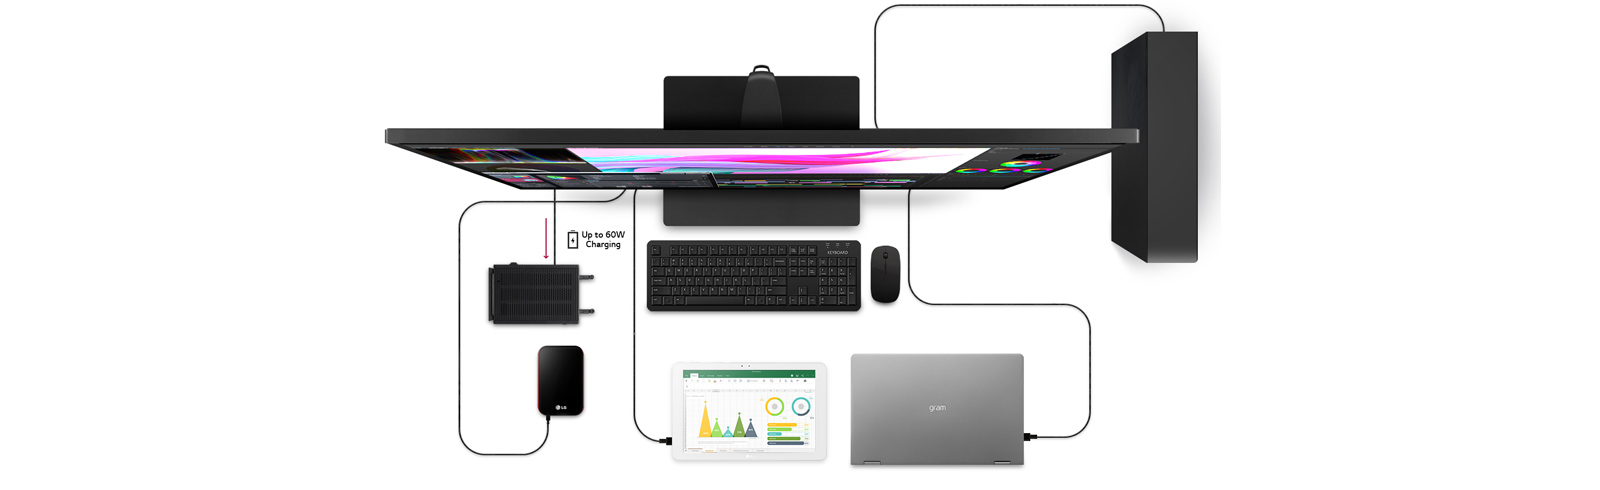 LG launches the UN700 series of 4K UHD desktop monitors with the LG 43UN700